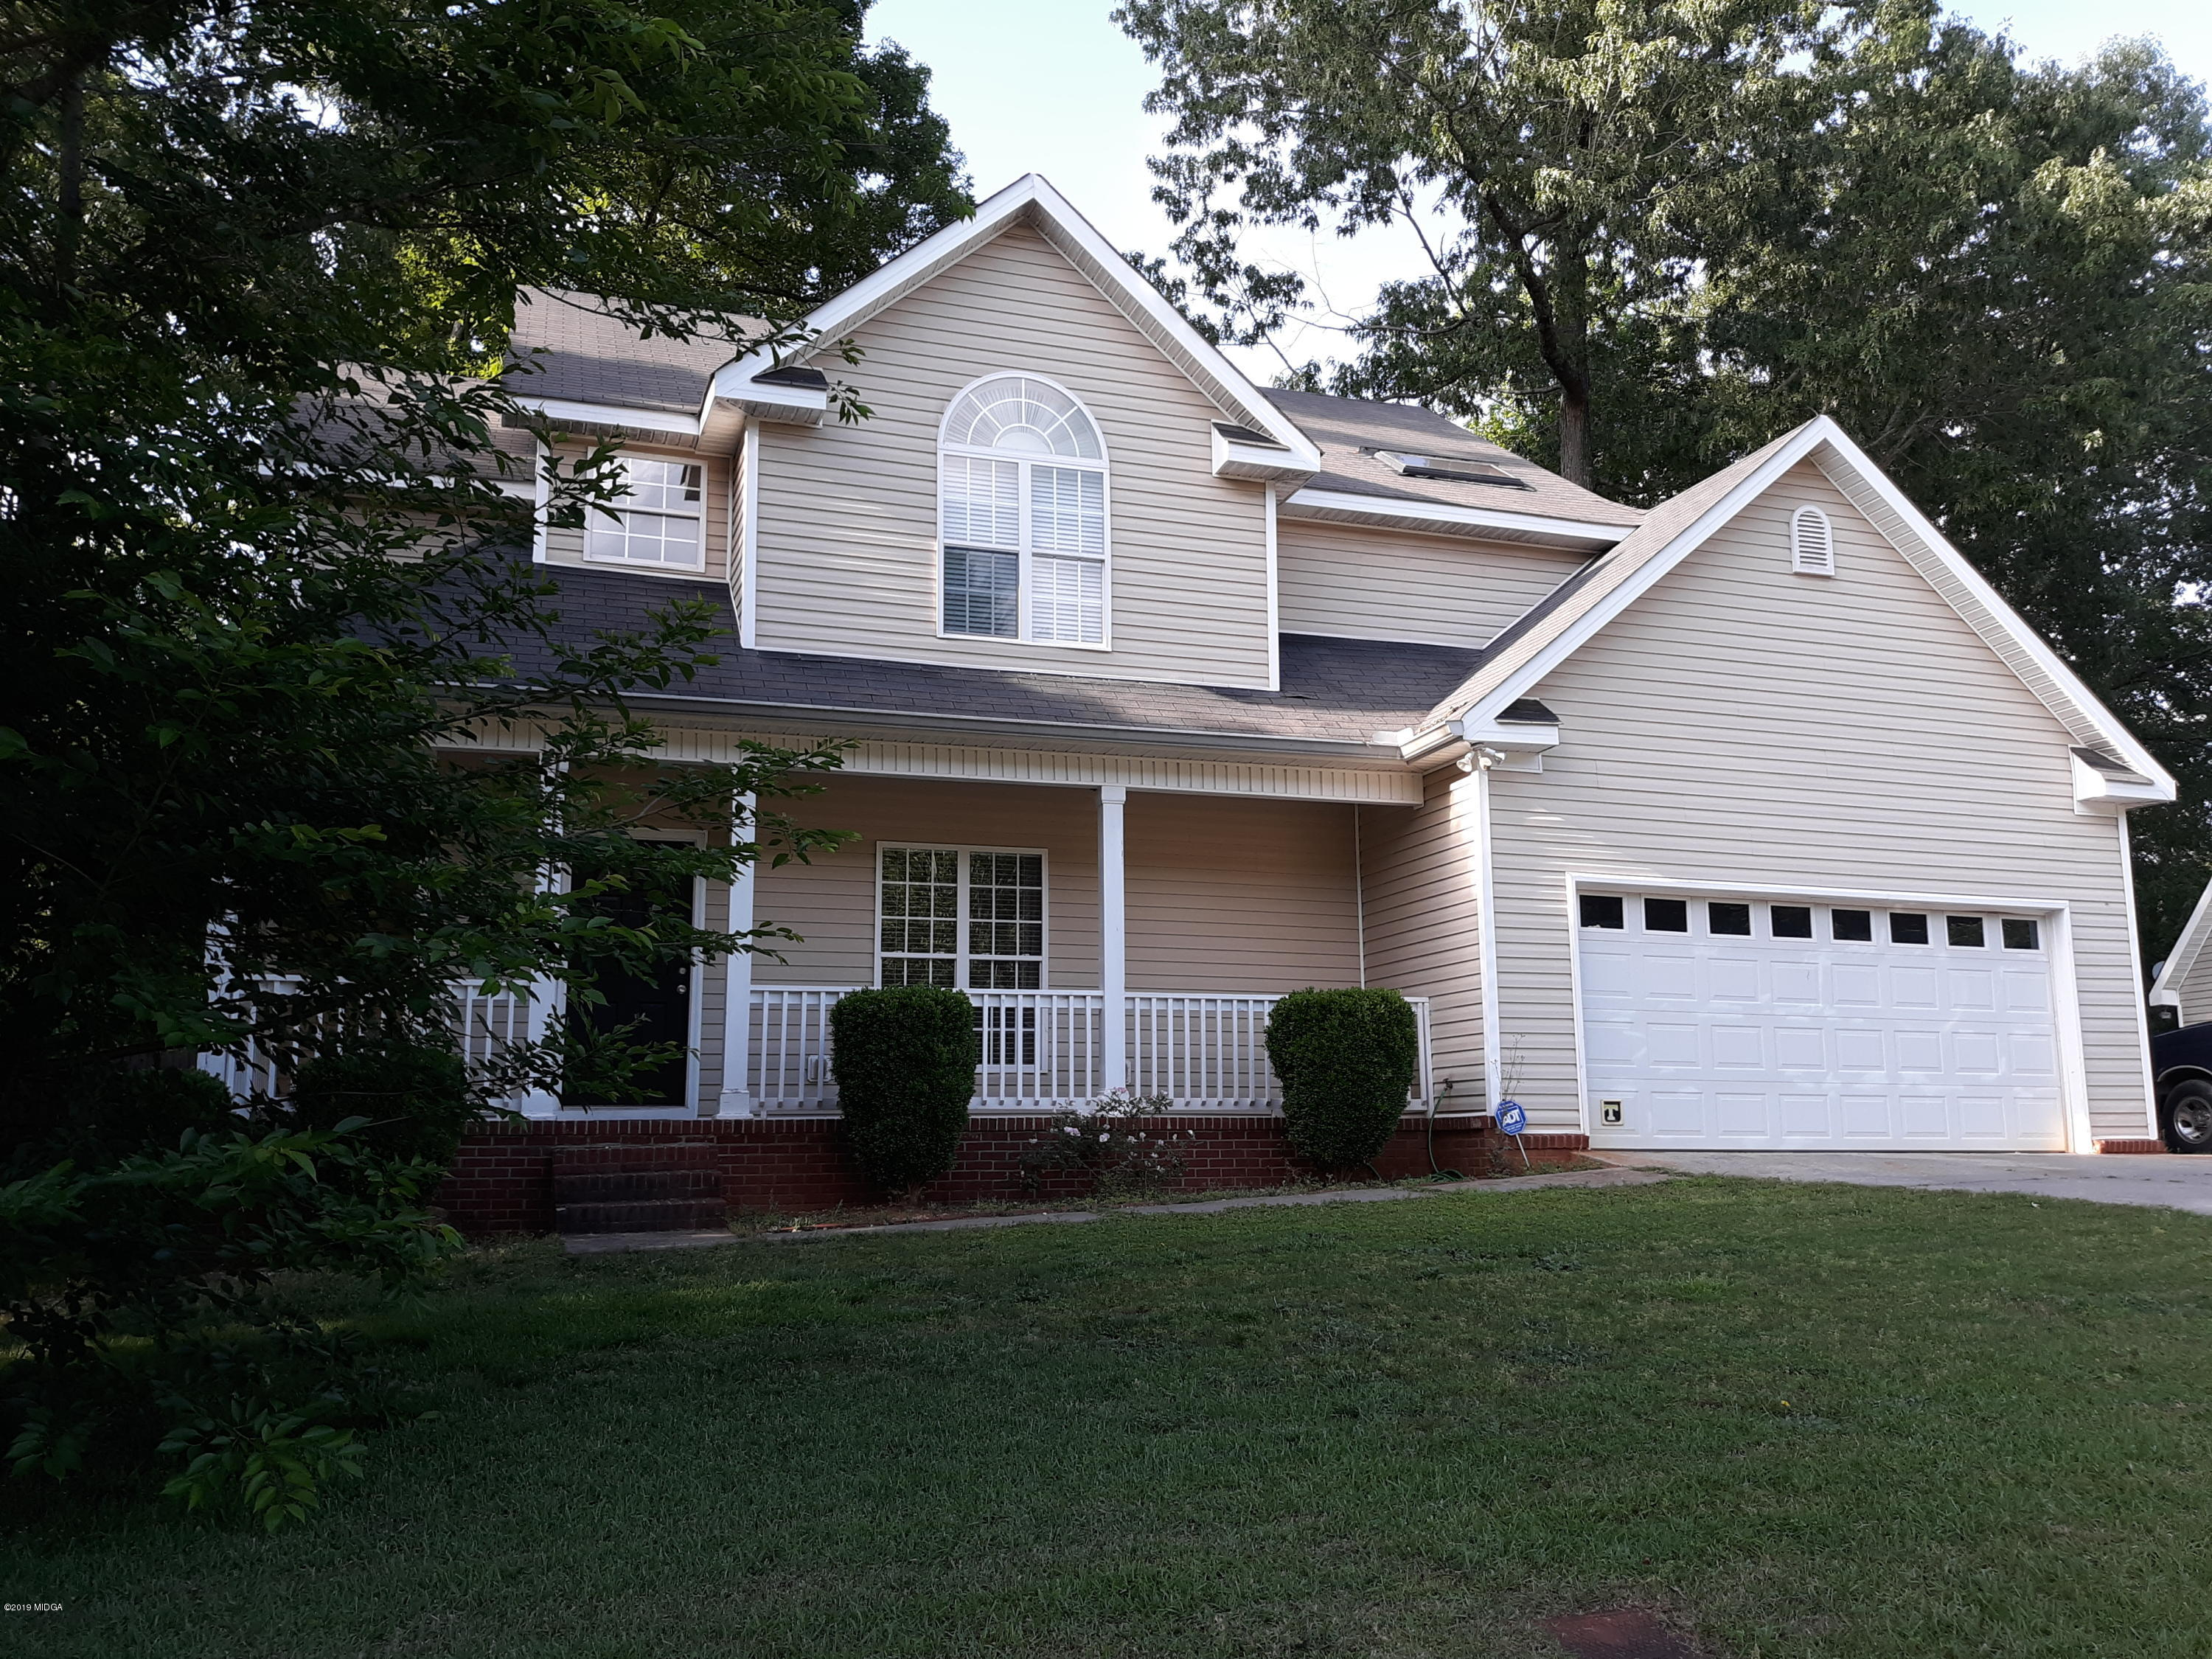 213 West Springs Drive Drive, Macon, GA 31220